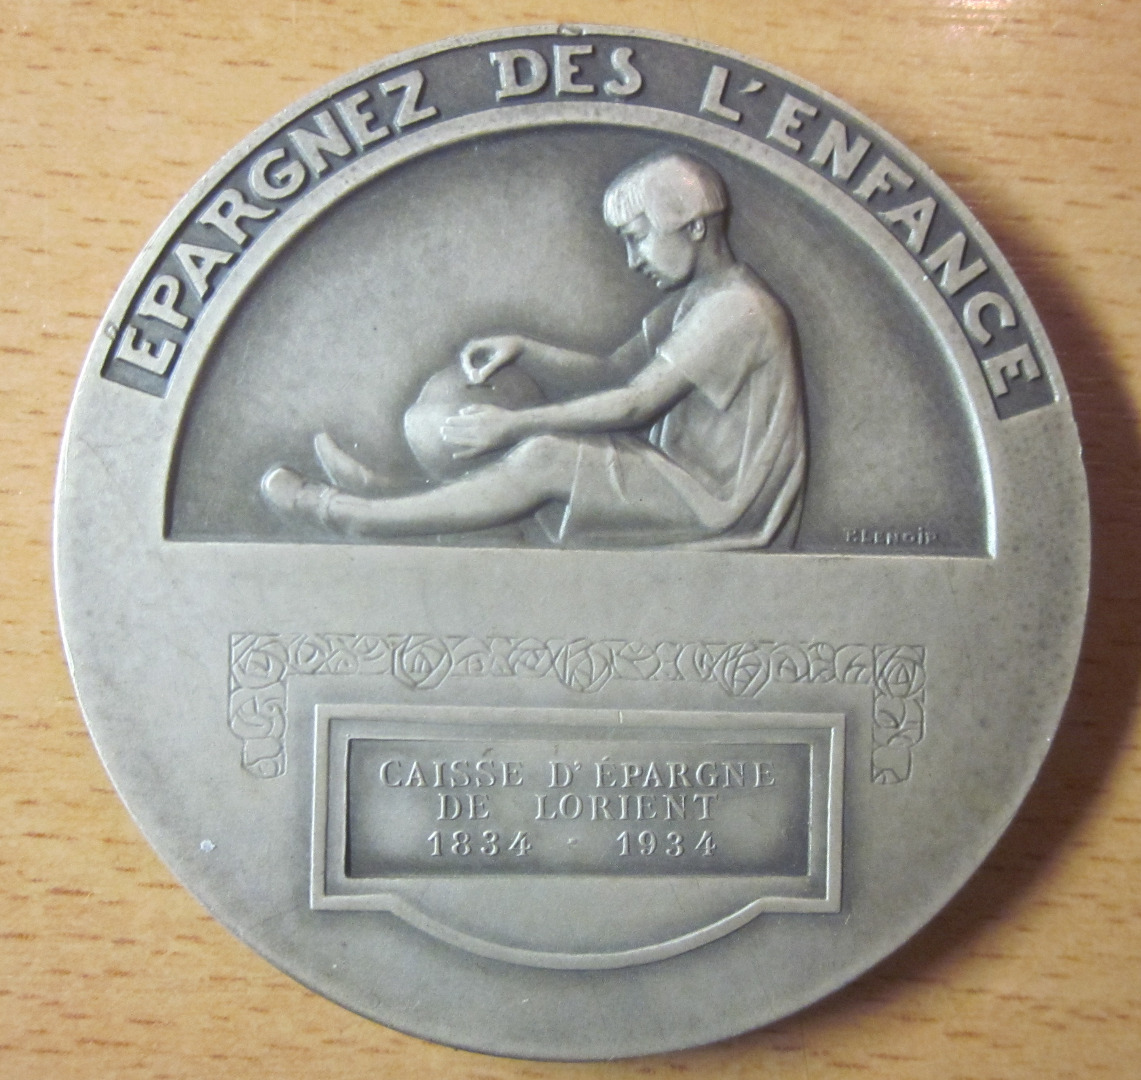 SILVER PLATED BRONZE MEDAL